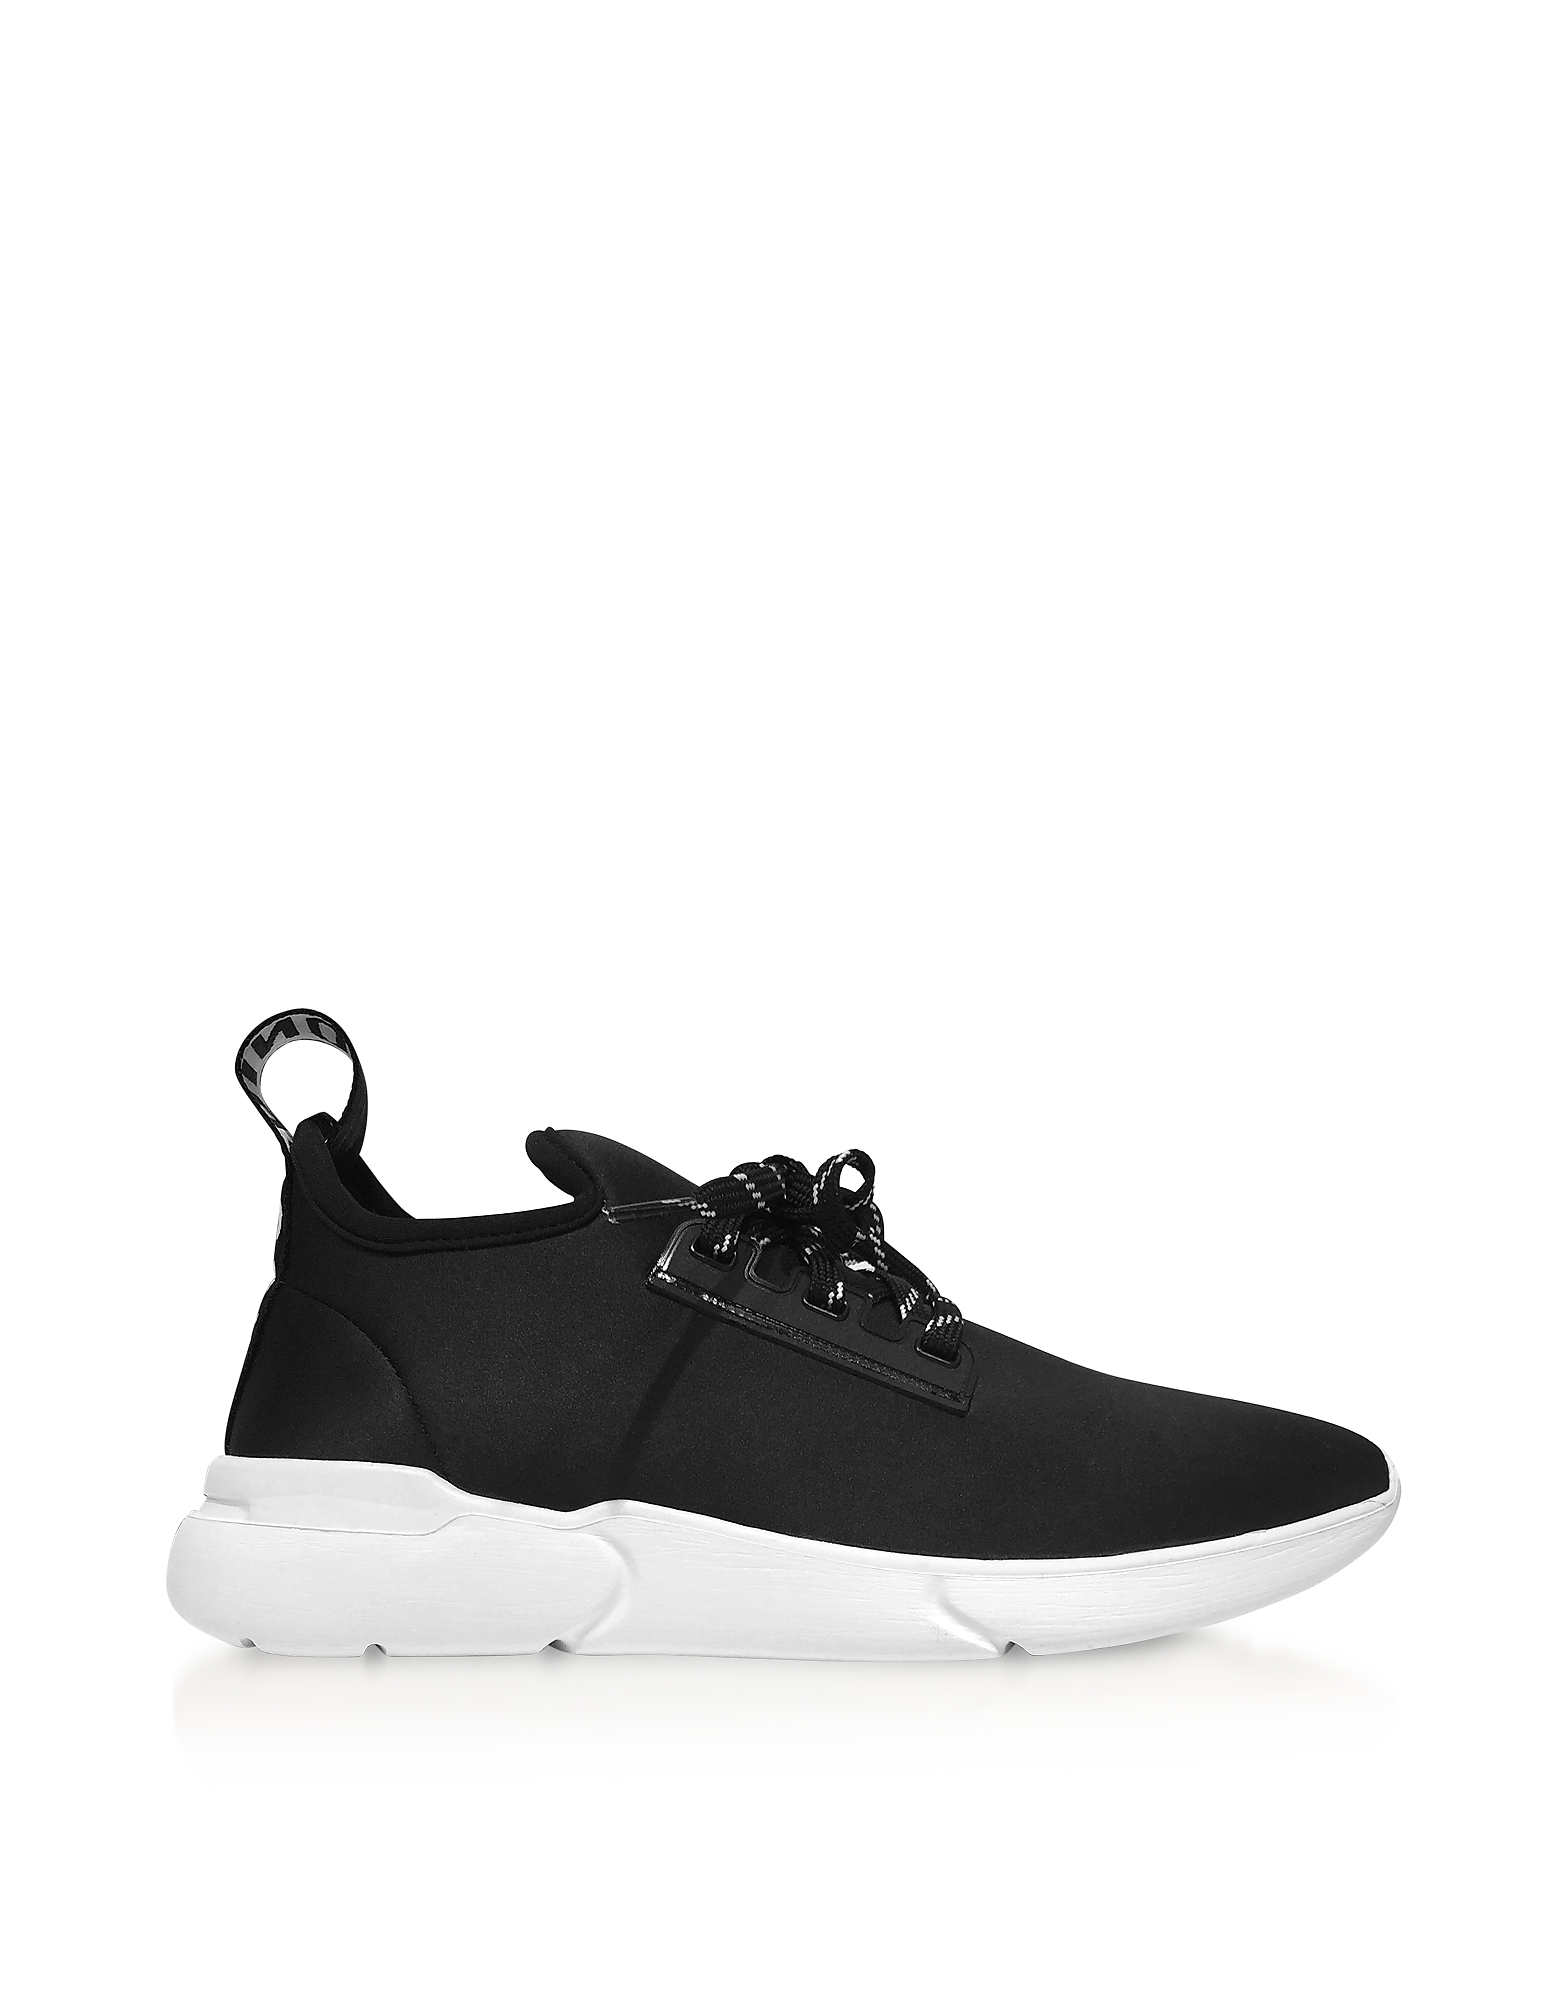 Moschino Shoes, Ettore Black Satin Low Top Sneakers